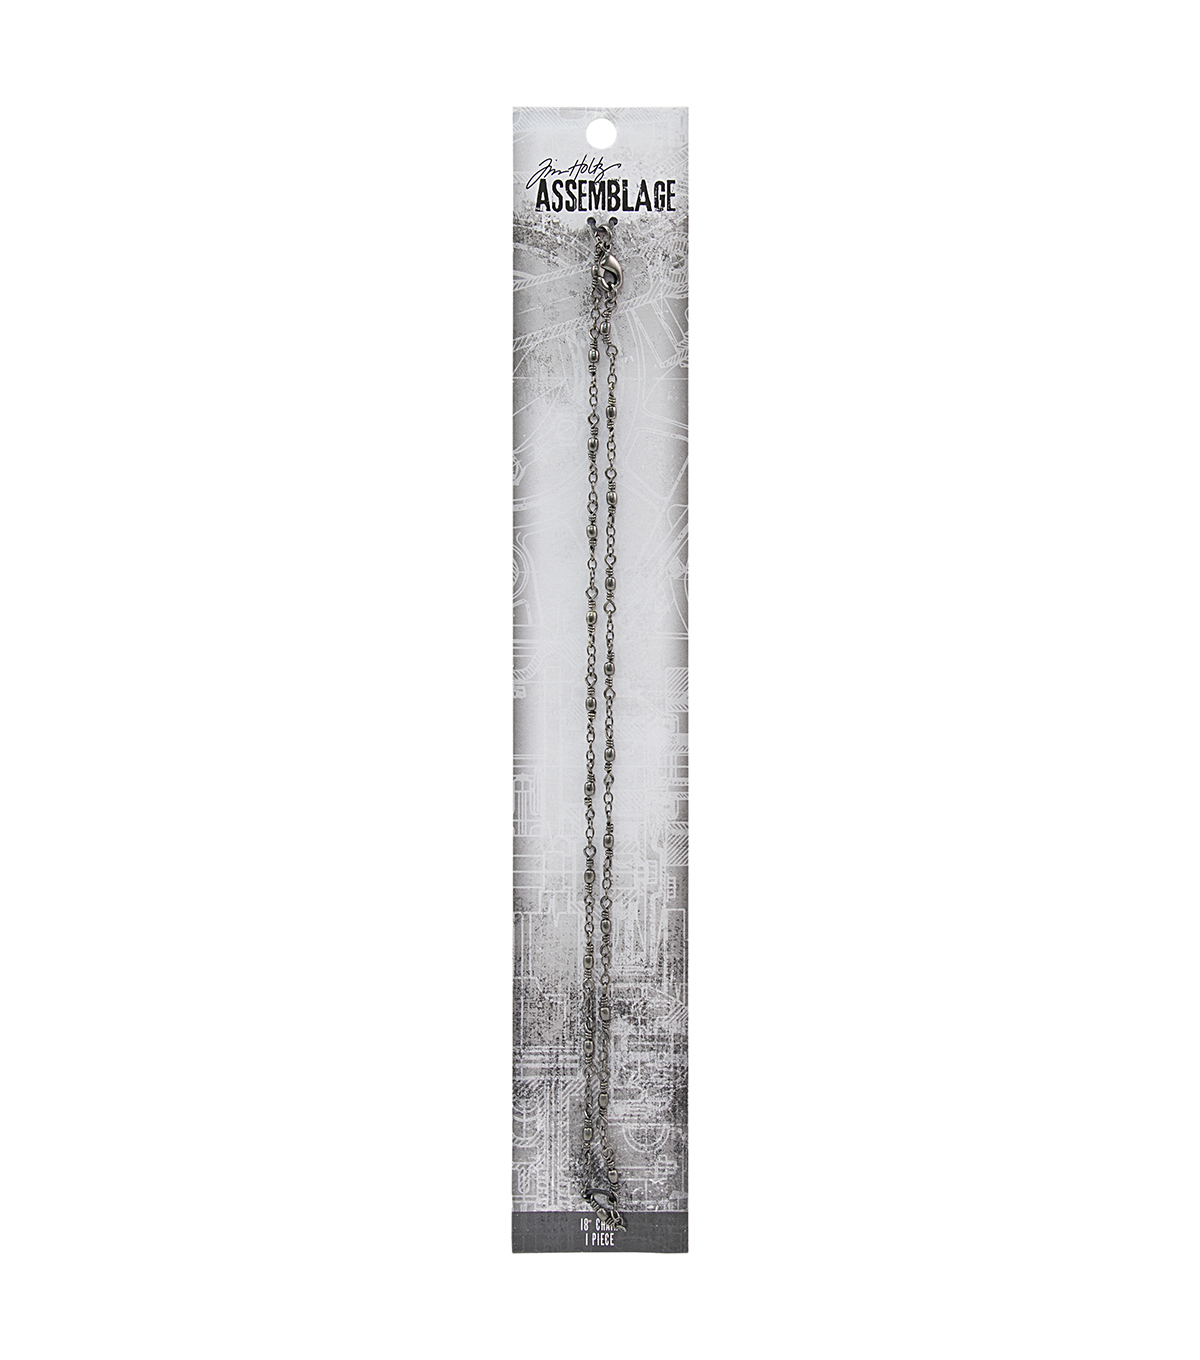 Tim Holtz Assemblage 18\u0027\u0027 Delicate Wired Chain with Beads-Gunmetal